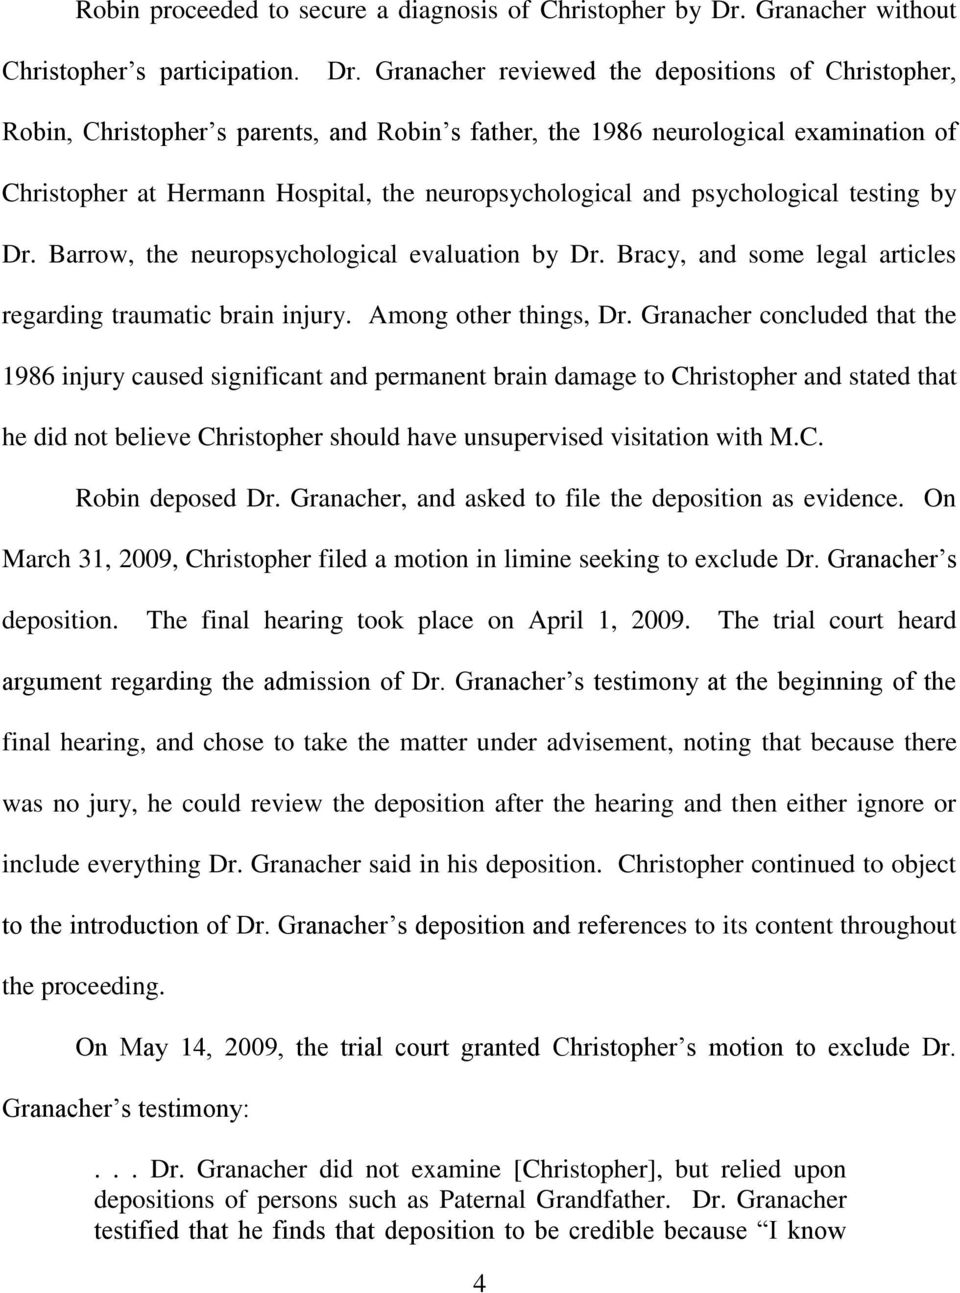 Granacher reviewed the depositions of Christopher, Robin, Christopher s parents, and Robin s father, the 1986 neurological examination of Christopher at Hermann Hospital, the neuropsychological and